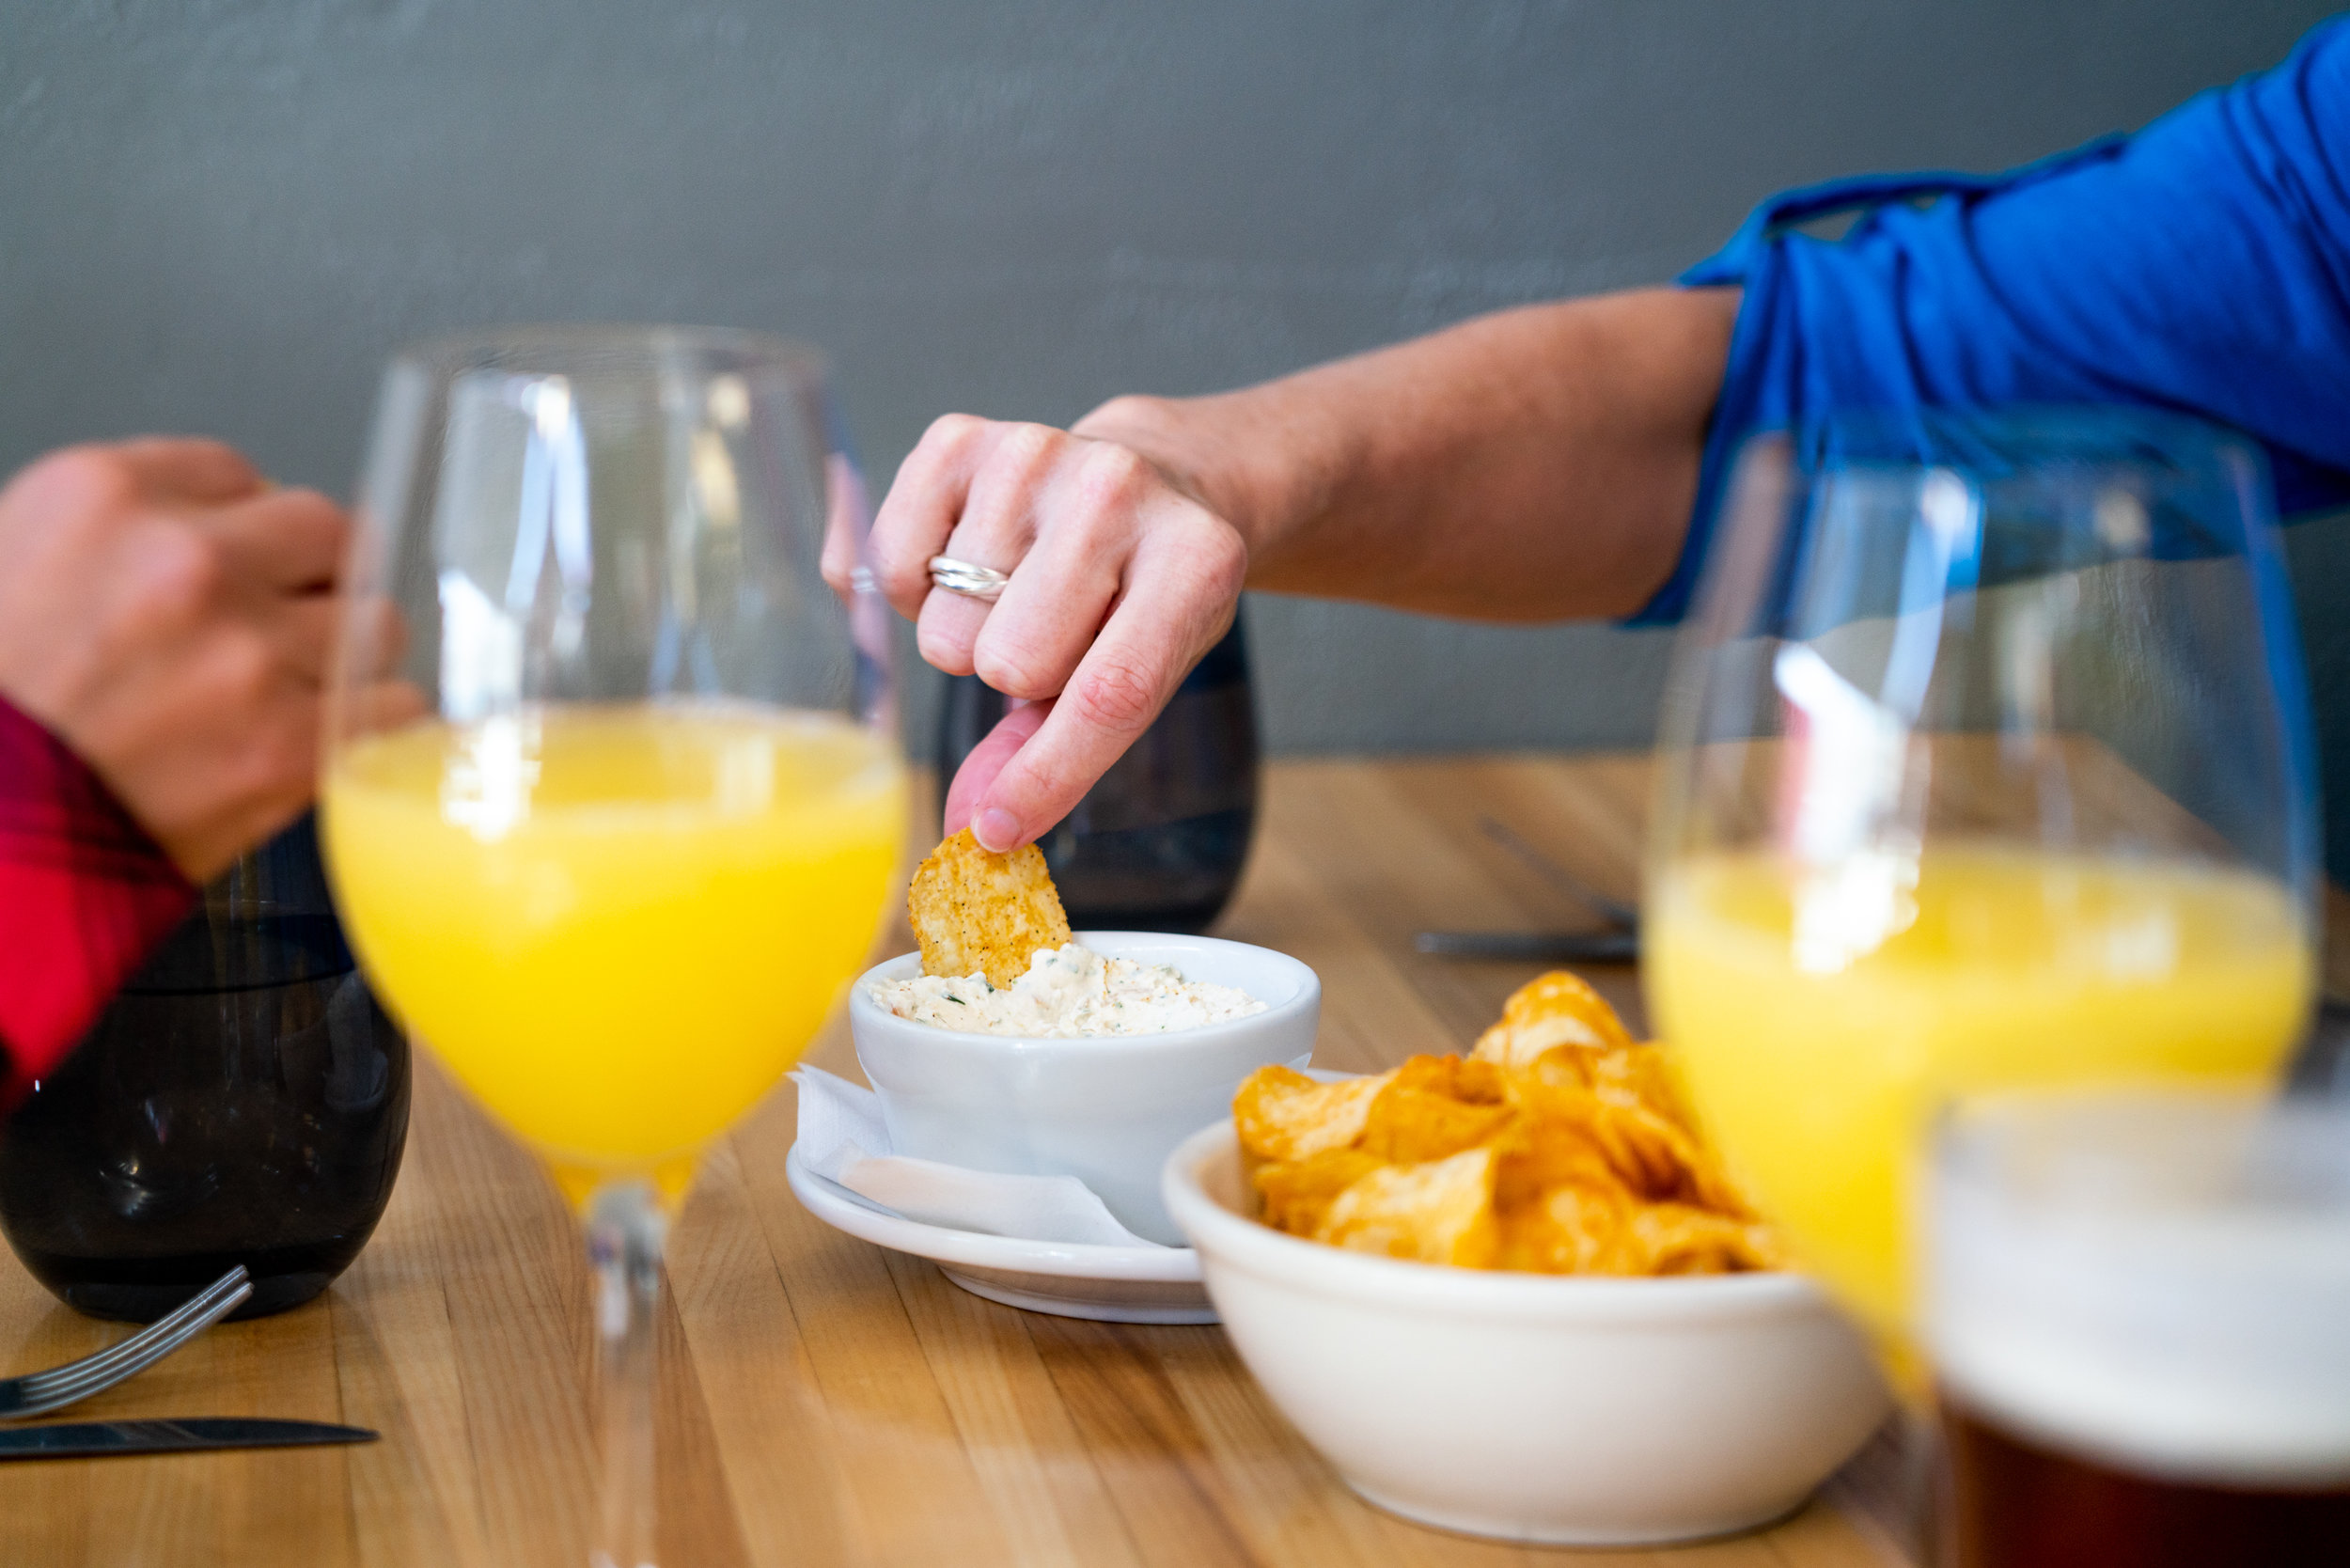 Our mimosas are bottomless. - Weekends at The Bird just got better! Enjoy $10 Bottomless Mimosas and Bloody Marys with your meal.